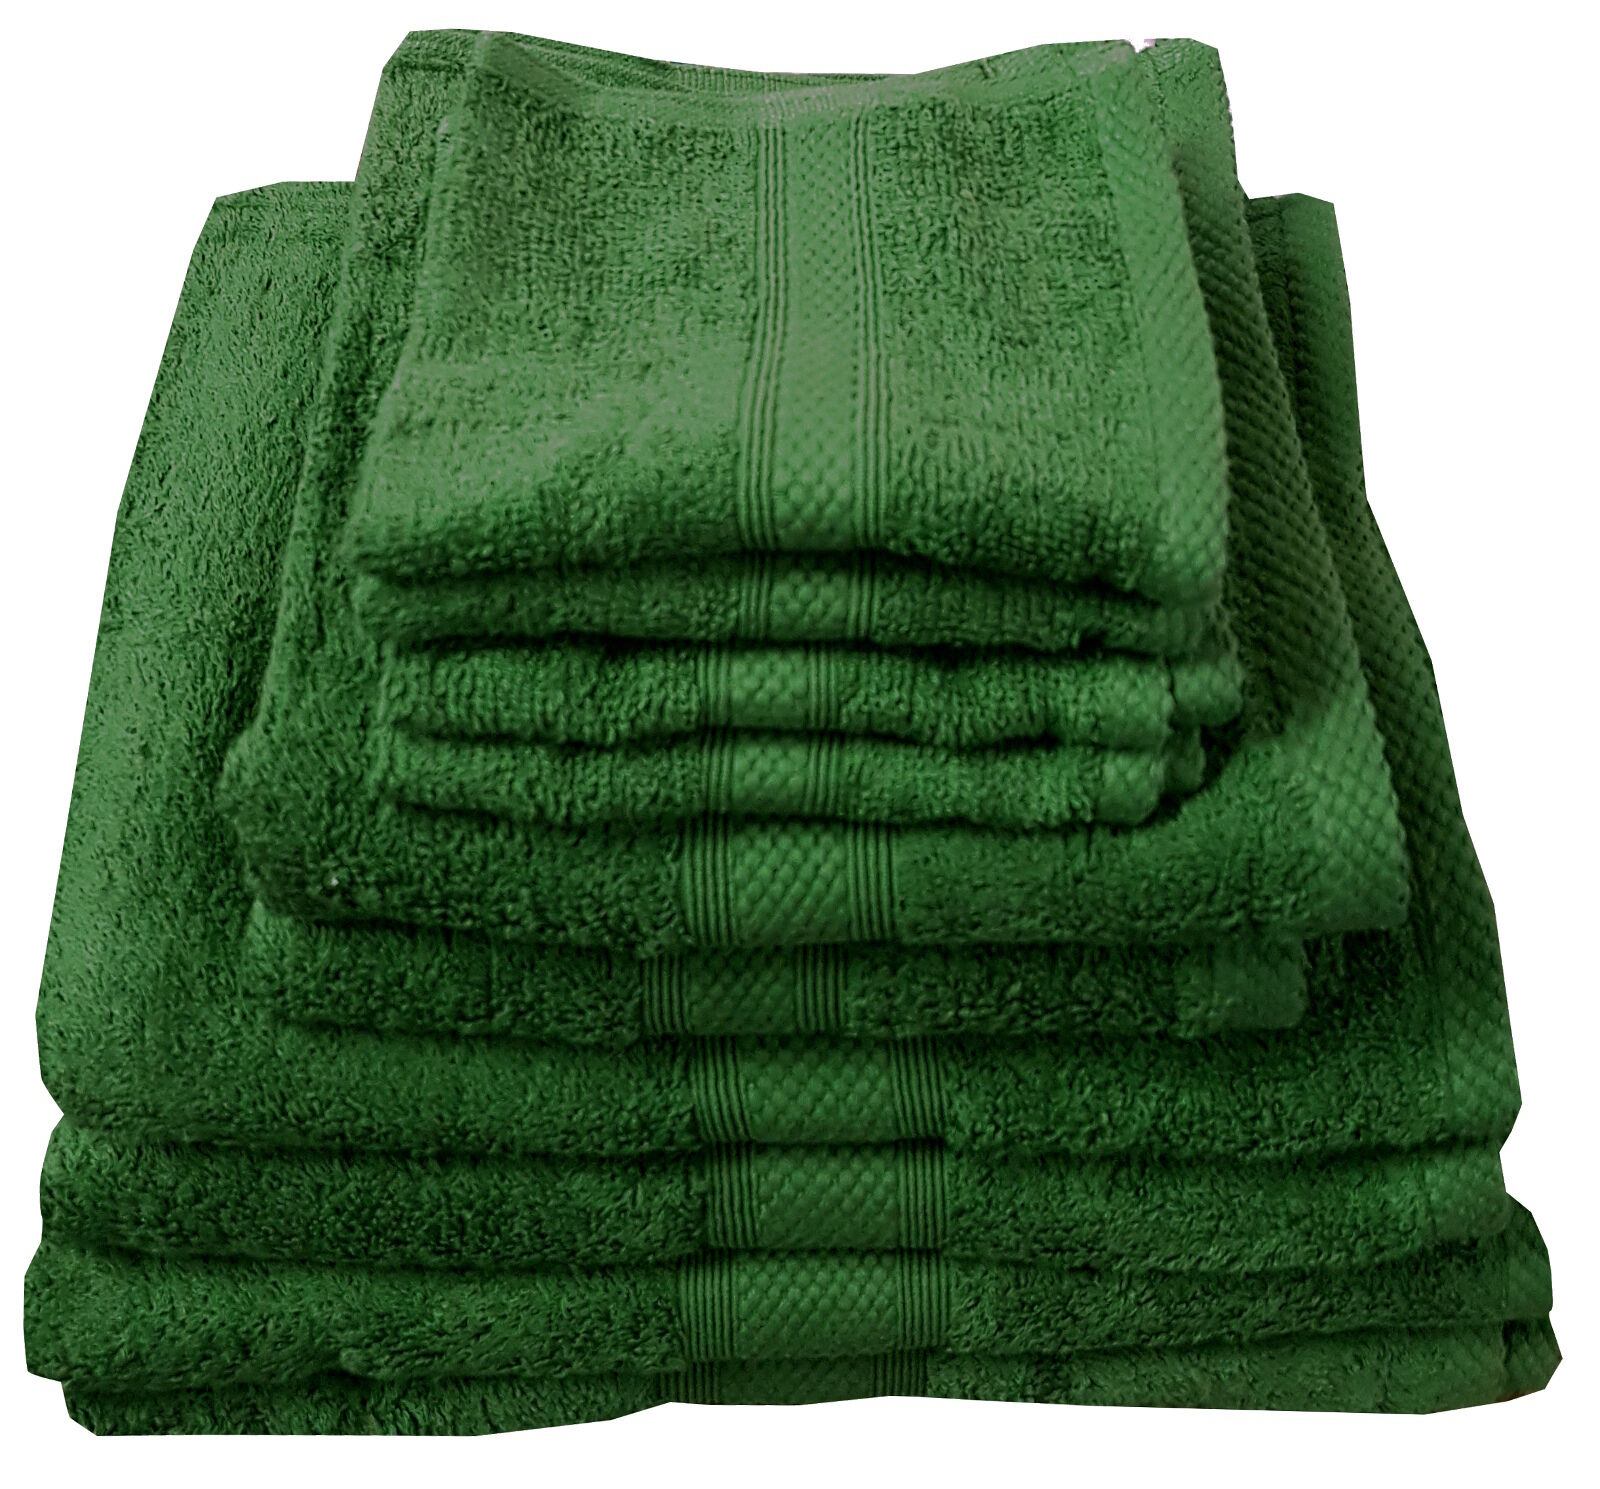 BOTTLE GREEN 500 GSM EGYPTIAN COTTON TOWELS LUXURY COMBED COTTON HAND BATH SHEET